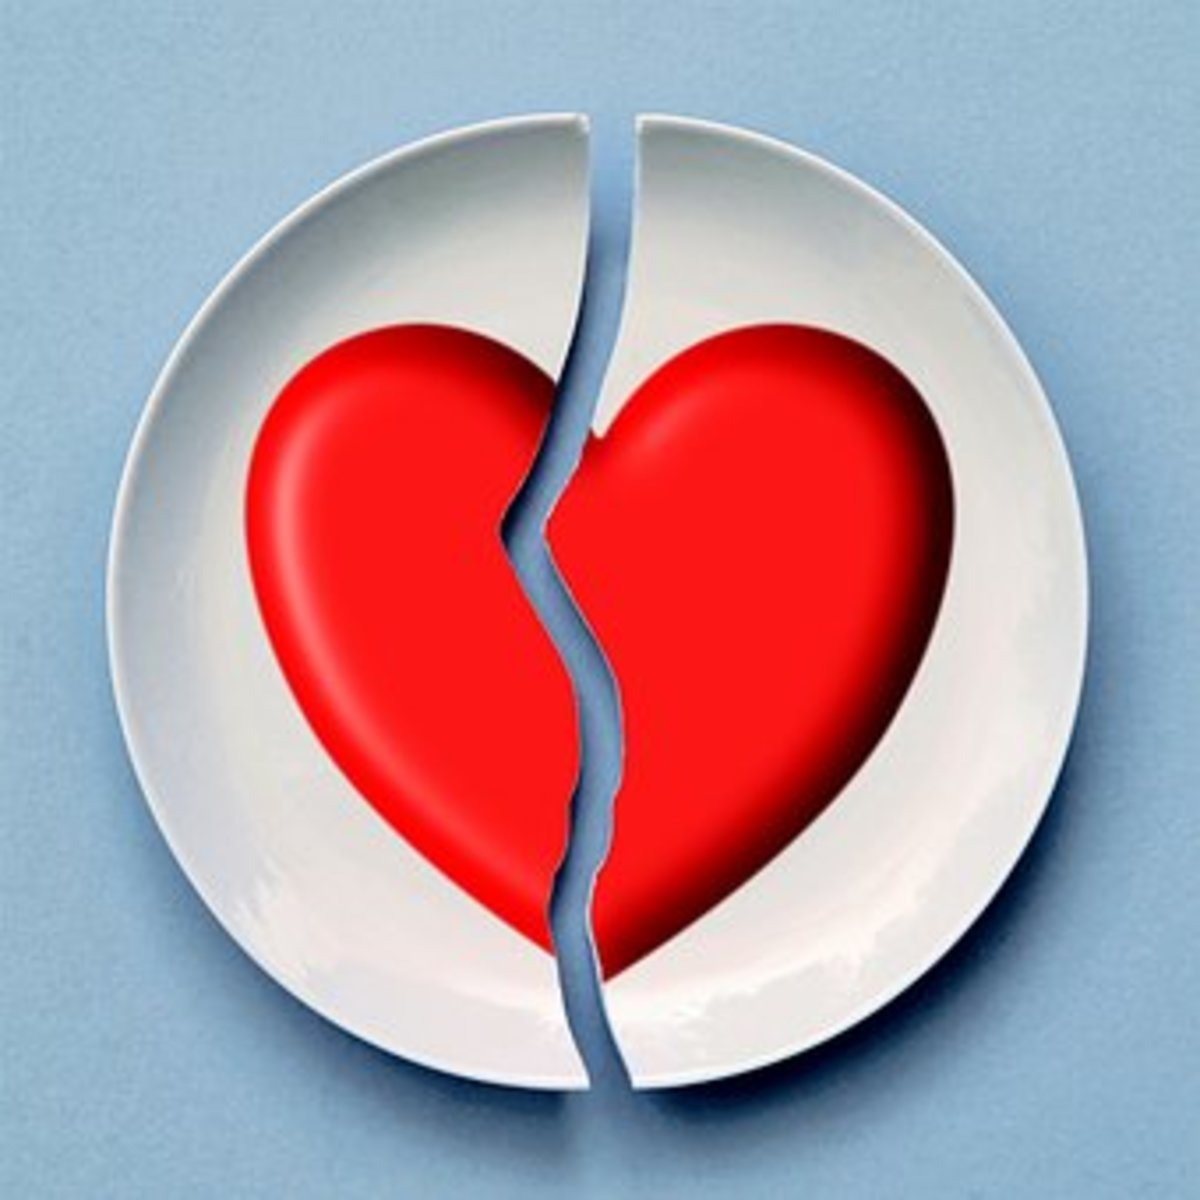 What do weight-loss and falling in love have in common?